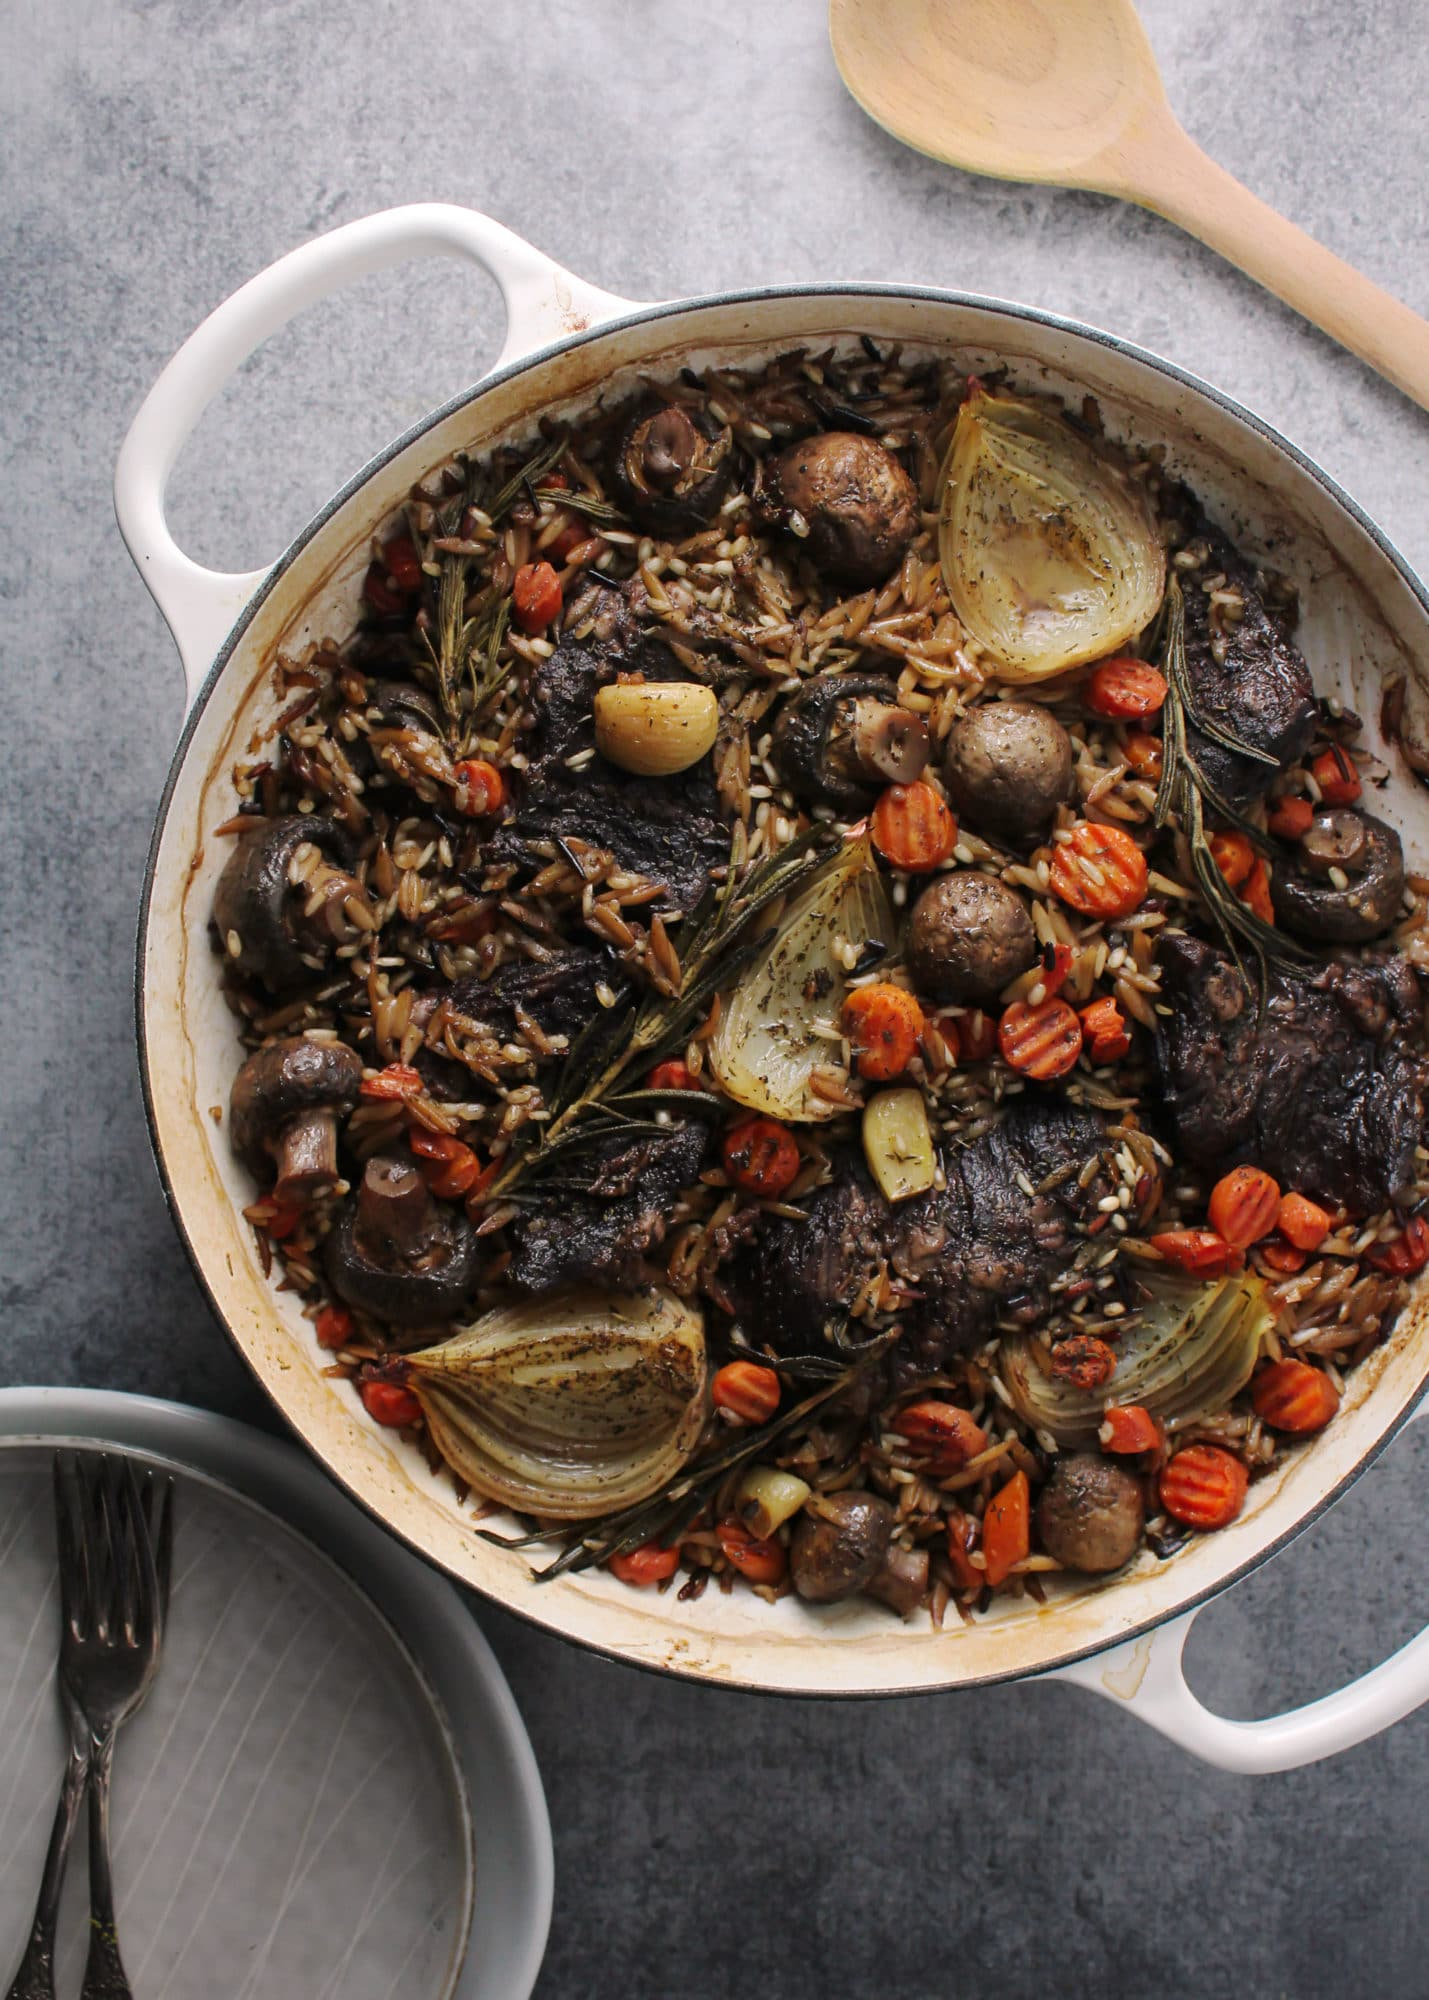 A seasonal one-pot recipe for Harvest Steak and Wild Rice. This dish makes the perfect meal for cozying up next to the fireplace on cold nights | via @AimeeMarsLiving | #Harvest #Steak #Skillet